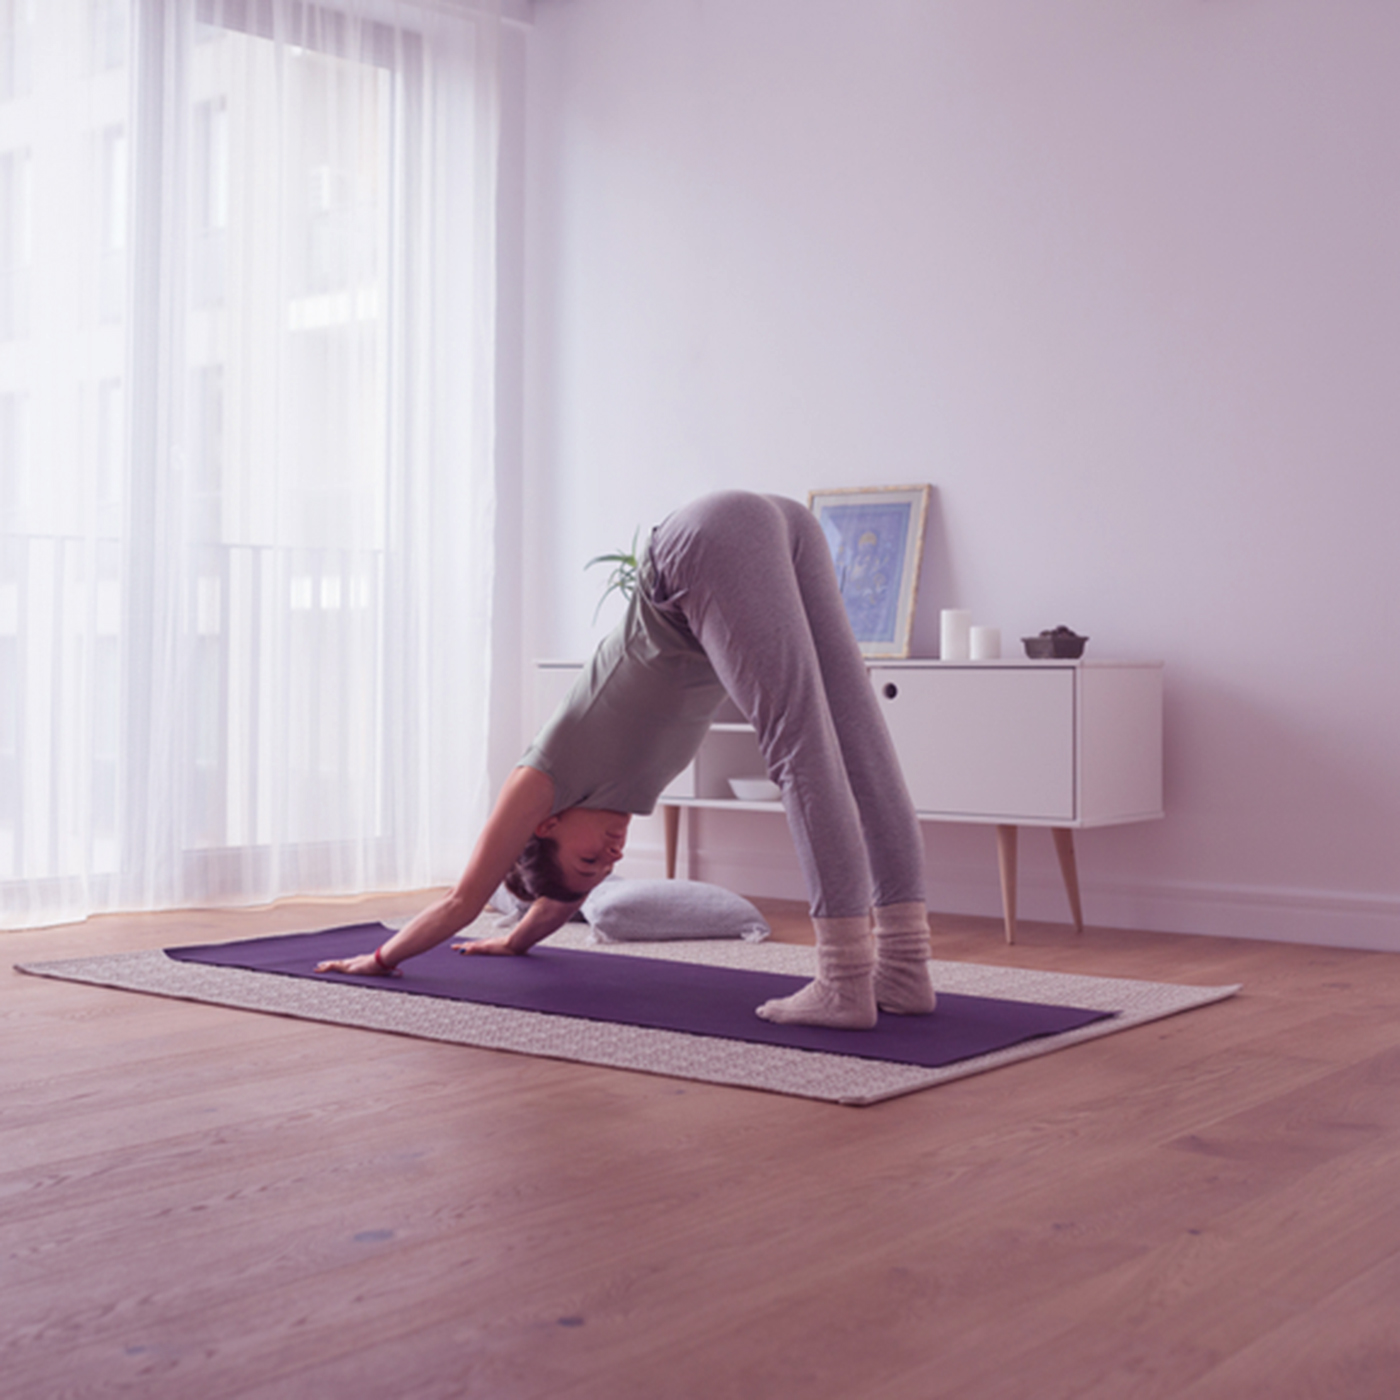 Downward Facing Dog: The Incredible Benefits (& How to Do the Pose)